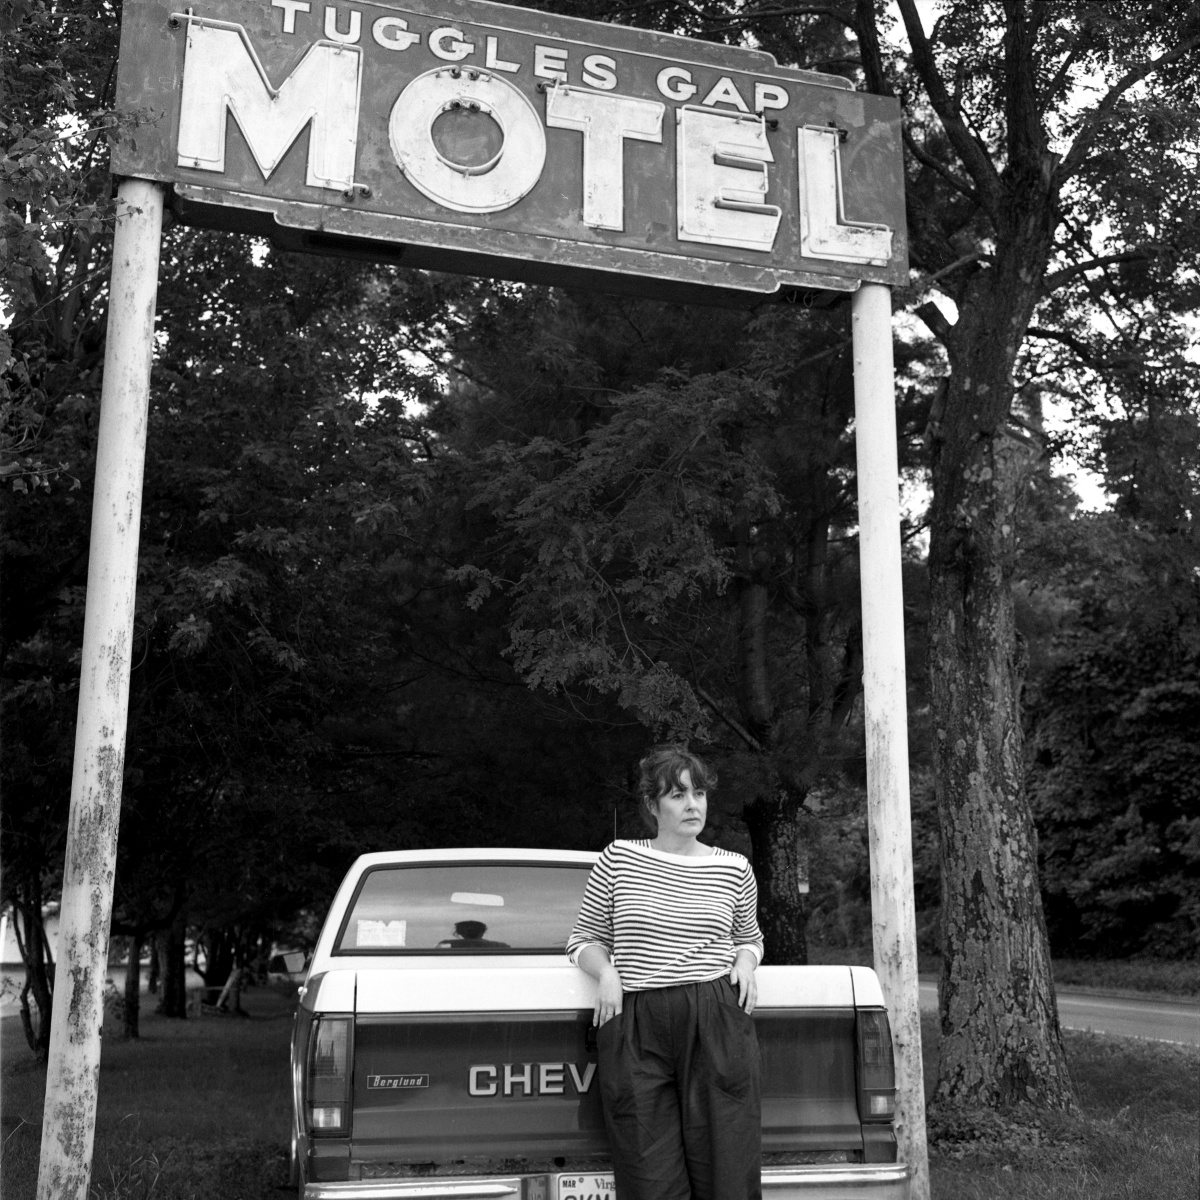 Tuggles Gap Motel,  from the  Southland  series. Archival pigment print.  Limited Edition 3/20.